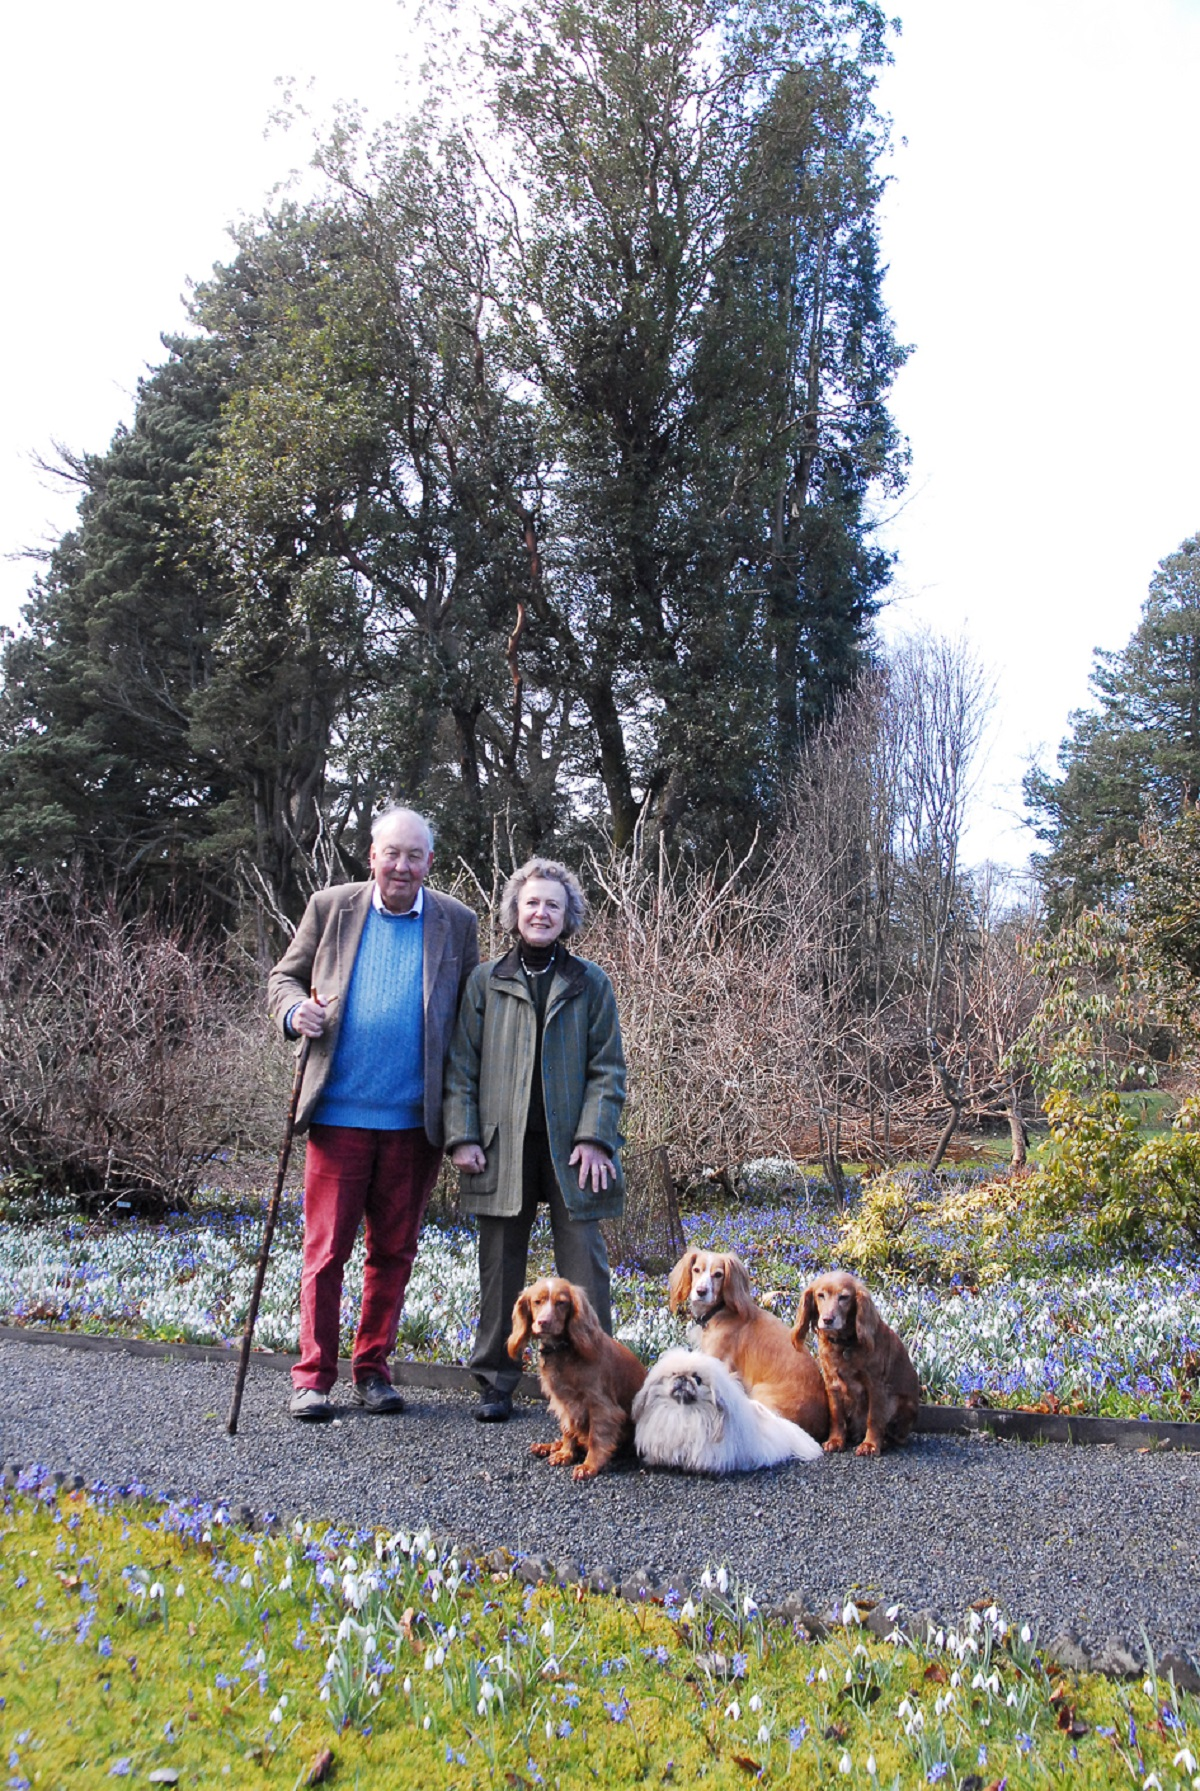 Lawrence and Elizabeth Banks near one of the 85 Champion trees at Hergest Croft Gardens in Kington with dogs Hanter, Hera, Honey and Tallulah. The tree is called Madrona (Arbutus Menziessi). Photo by Eye Contact Media.